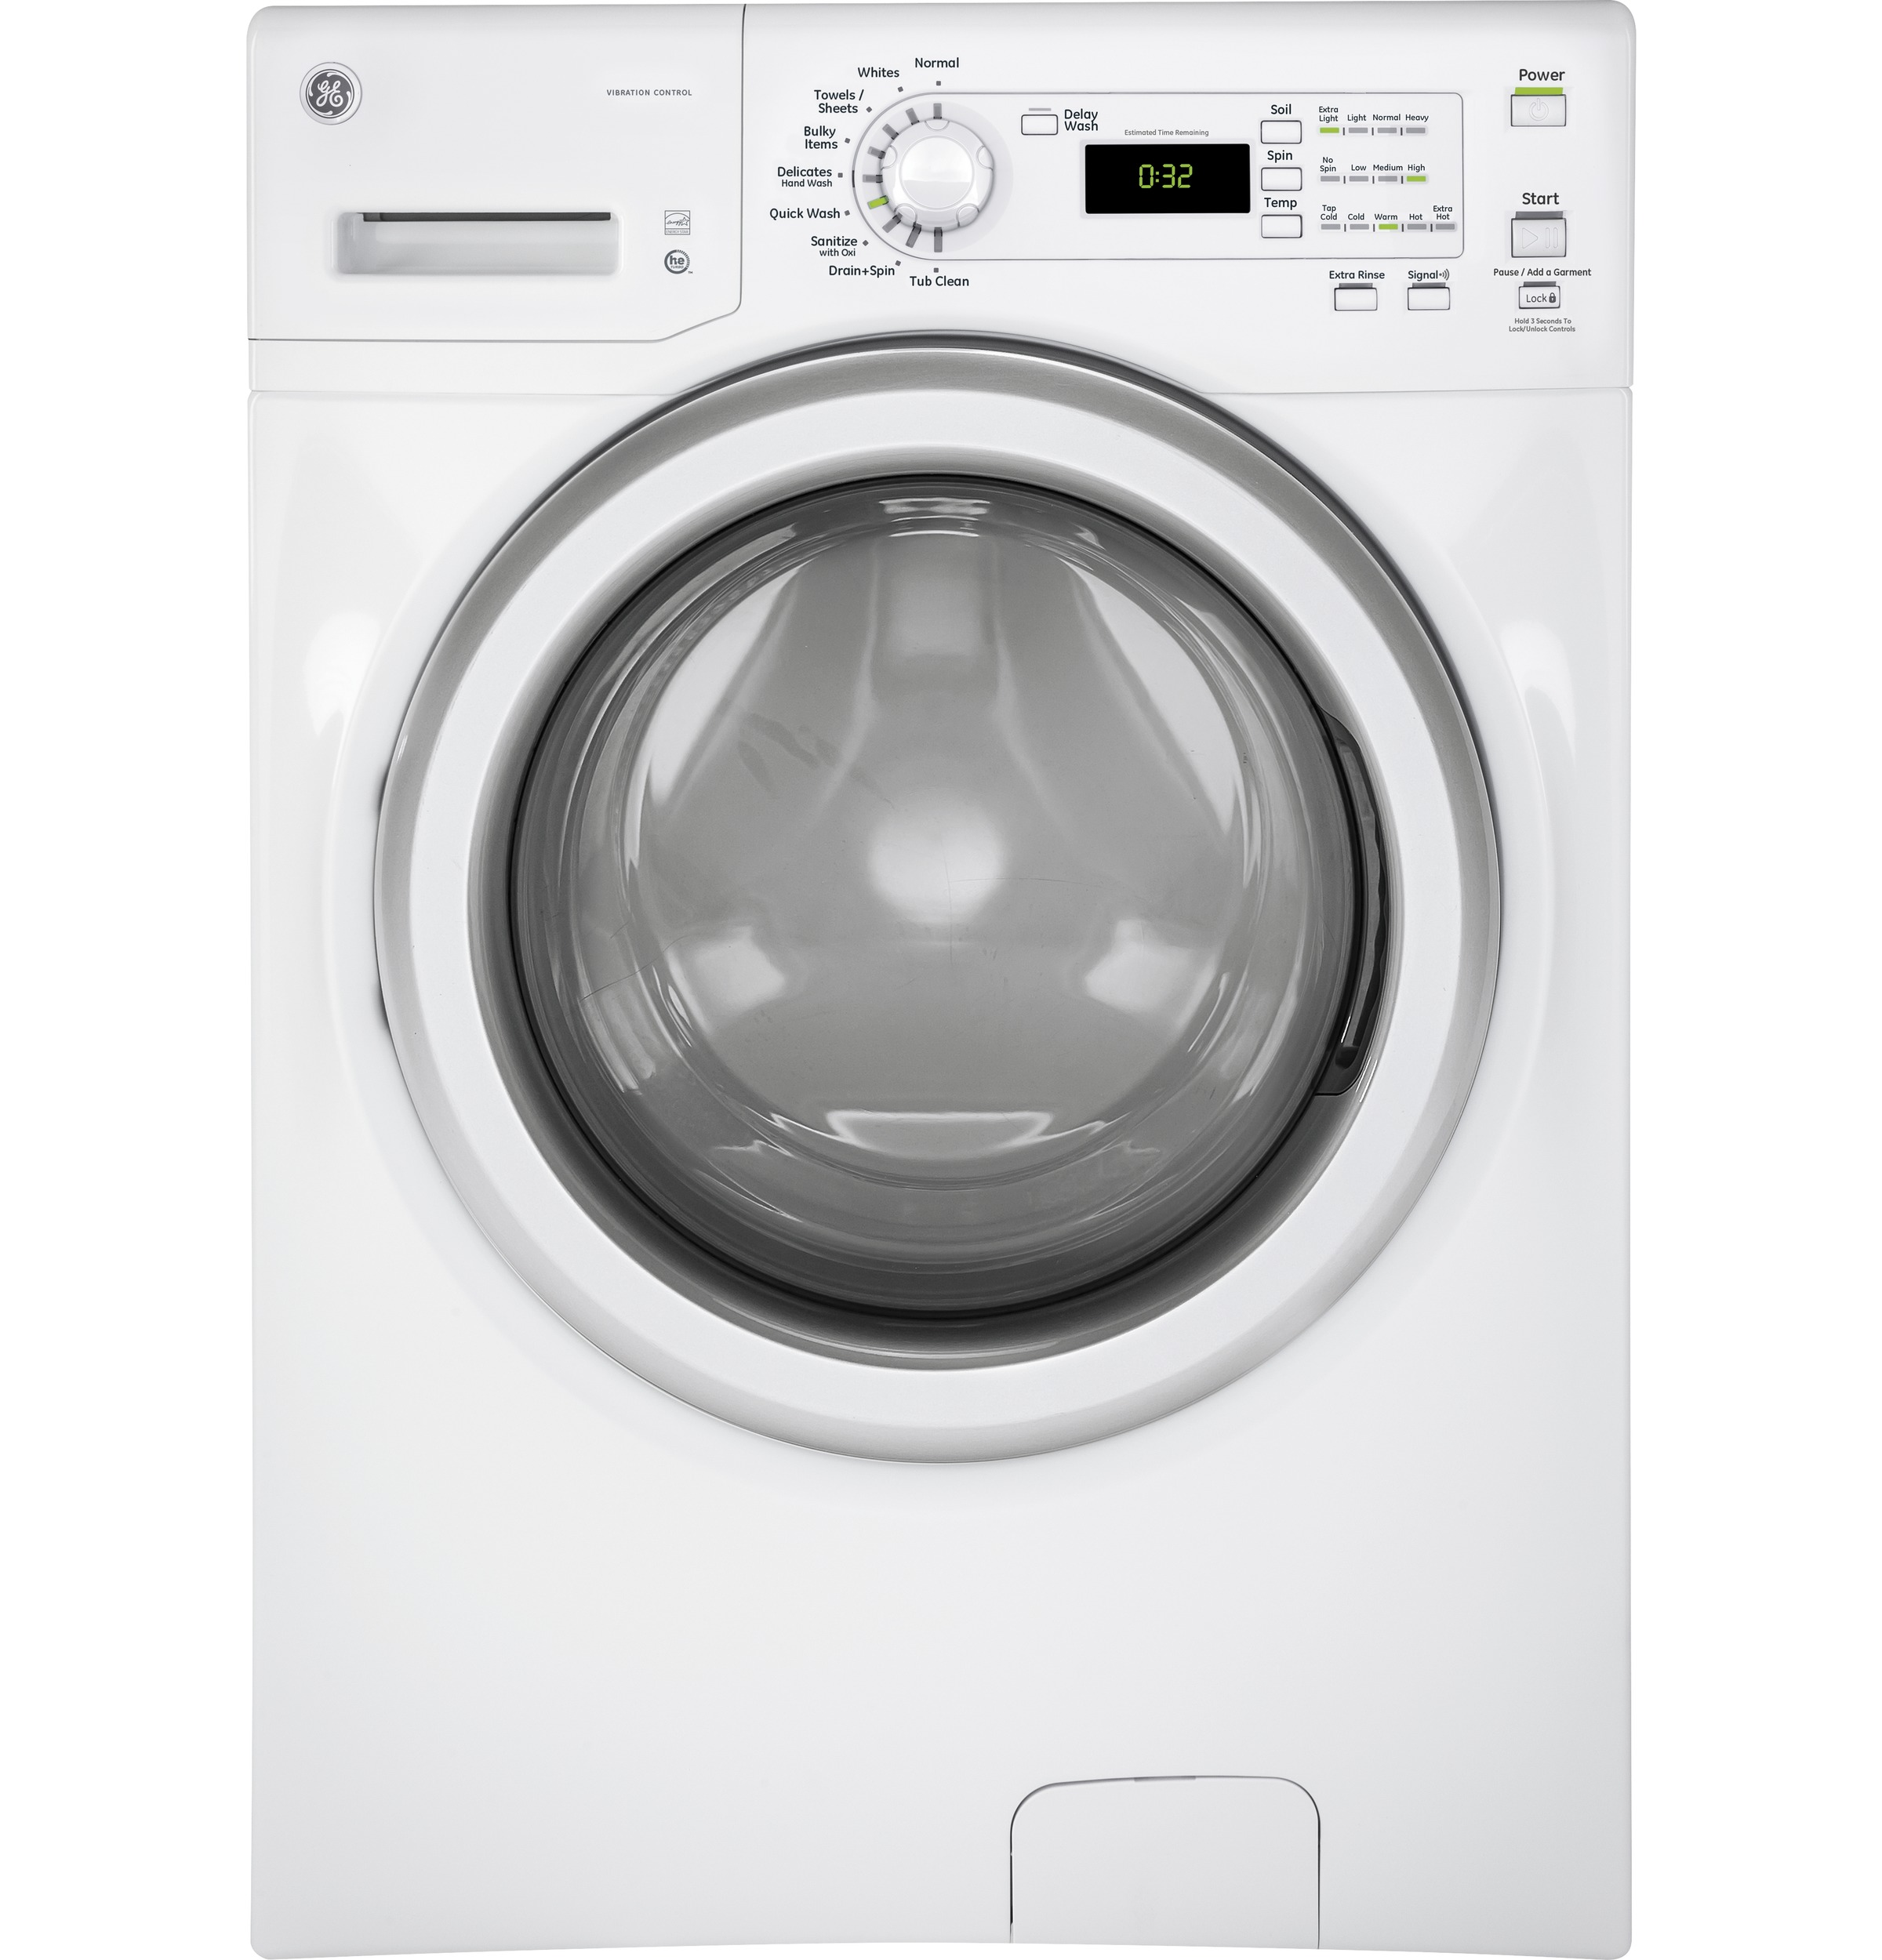 22121 – Front Load Washer – GFW400SCMWW